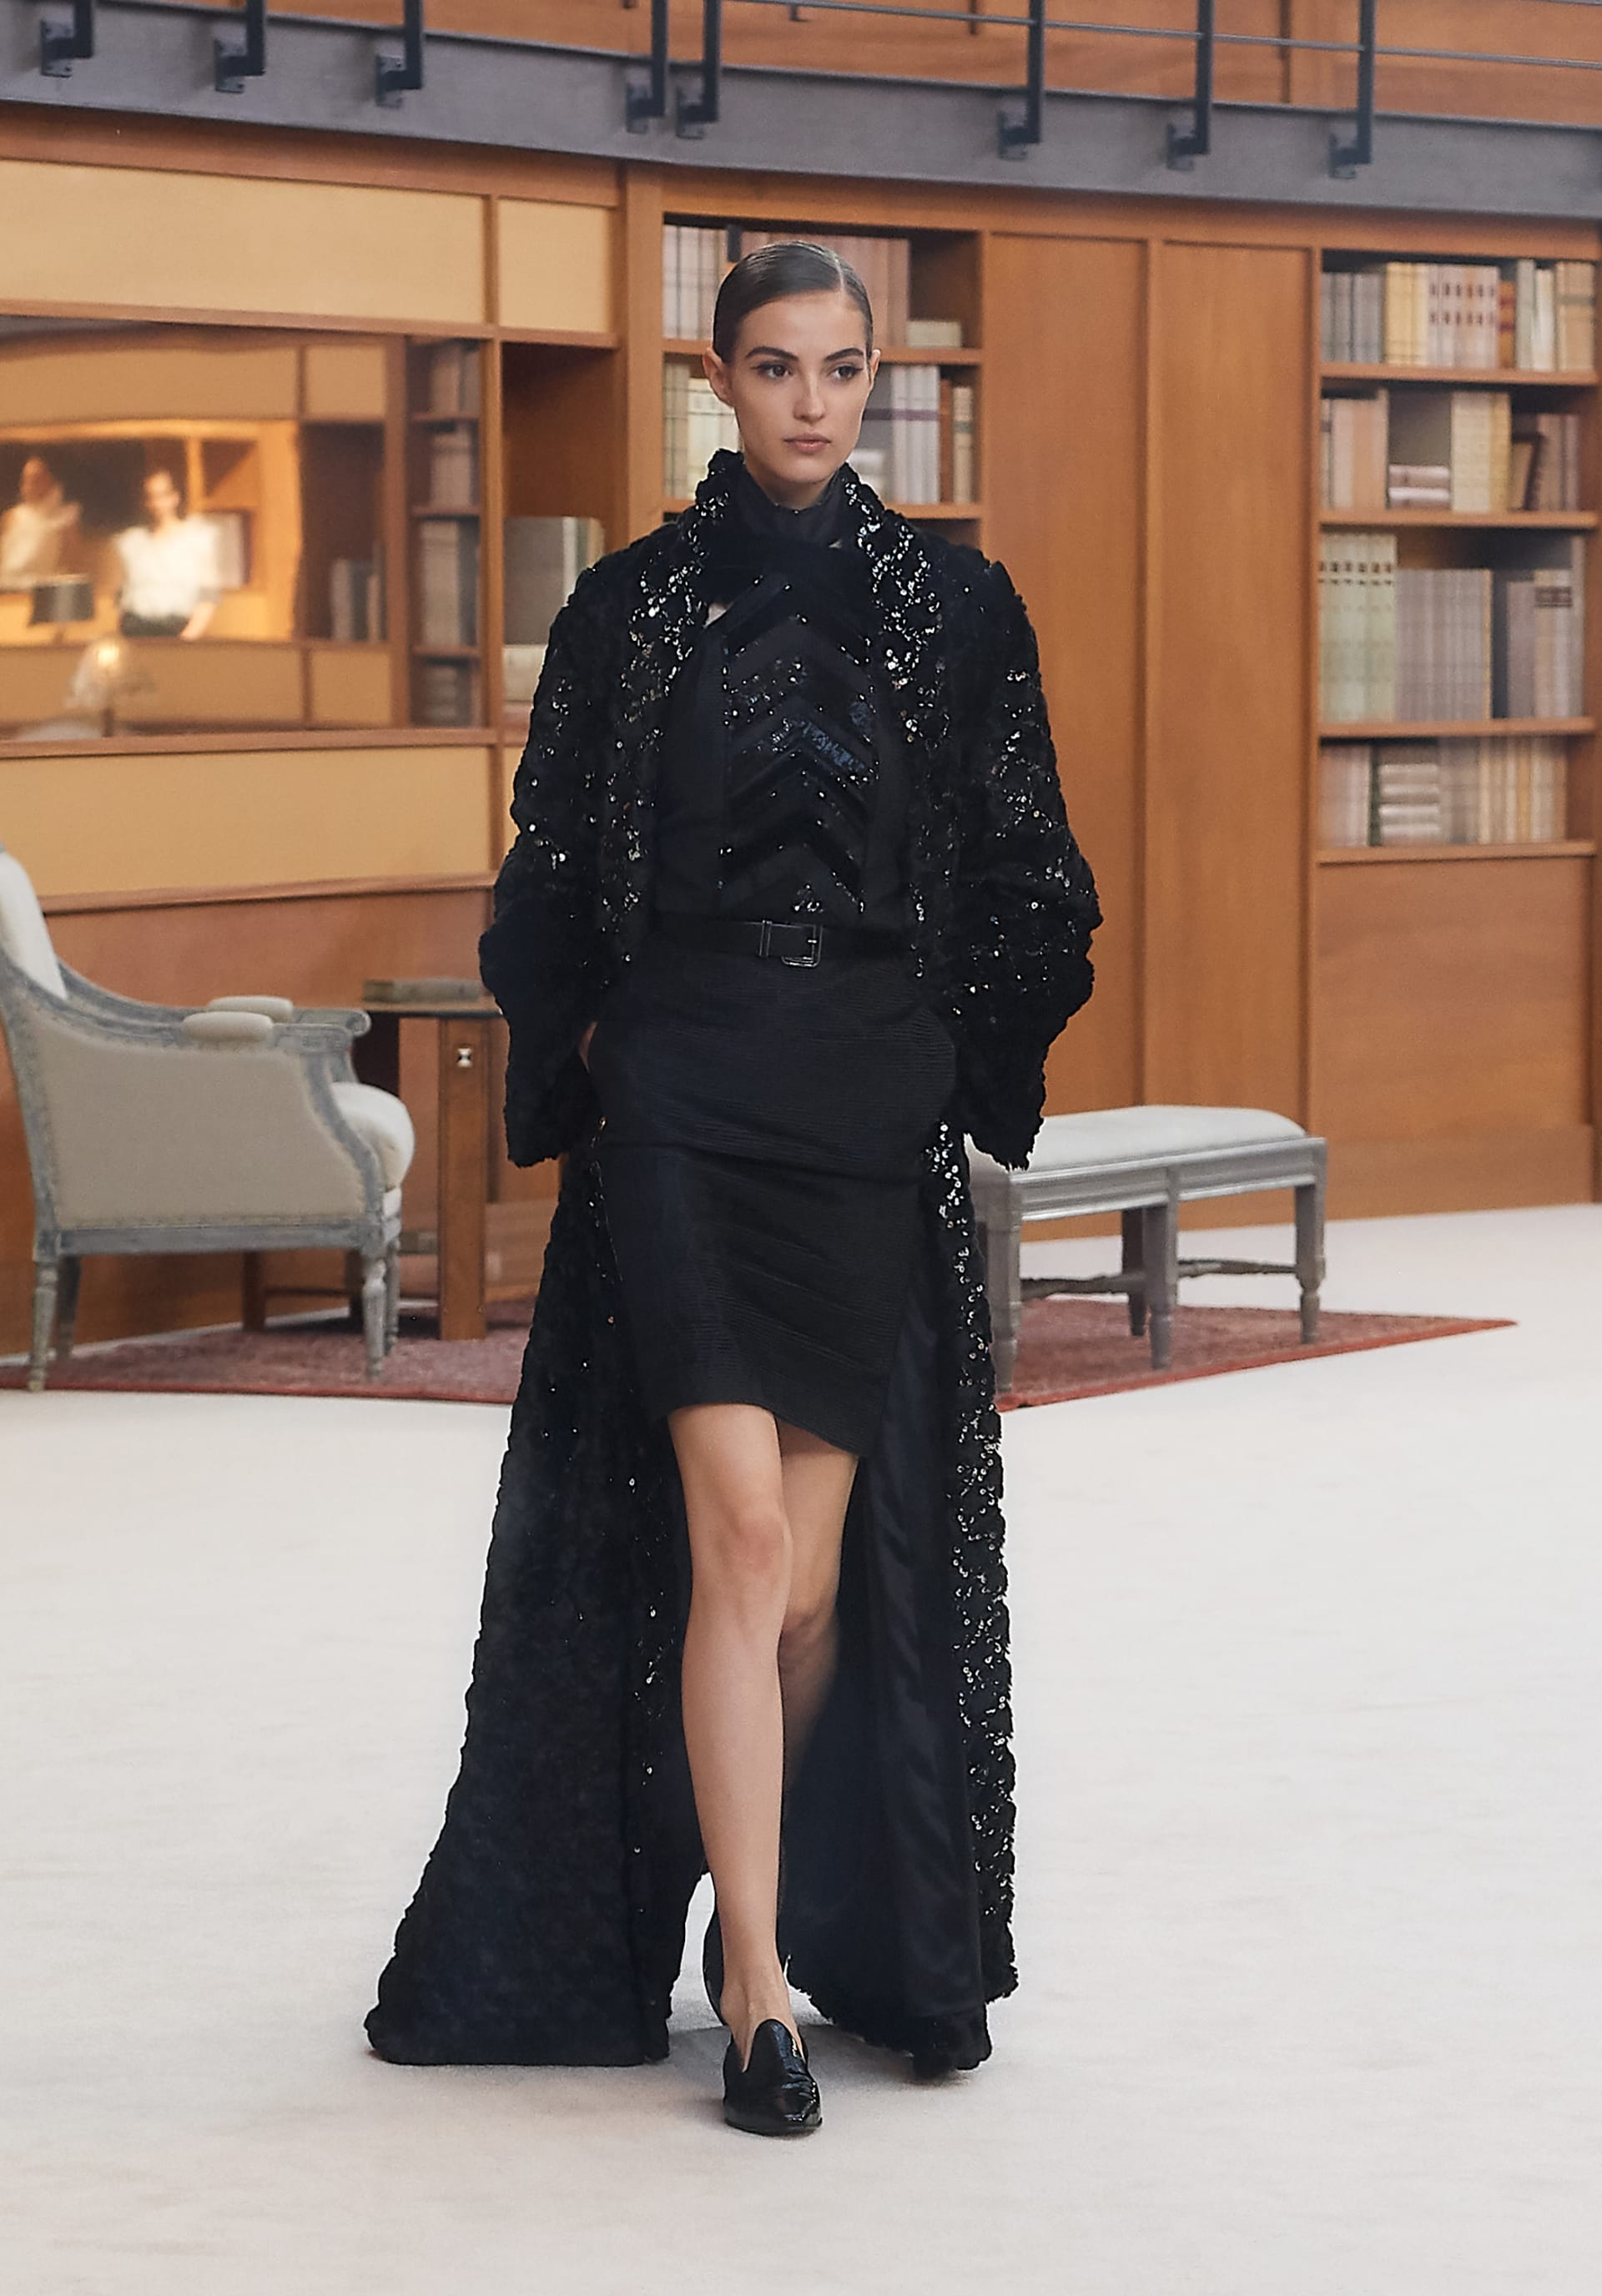 View 1 - Look 56 - Fall-Winter 2019/20 Haute-Couture - see full sized version